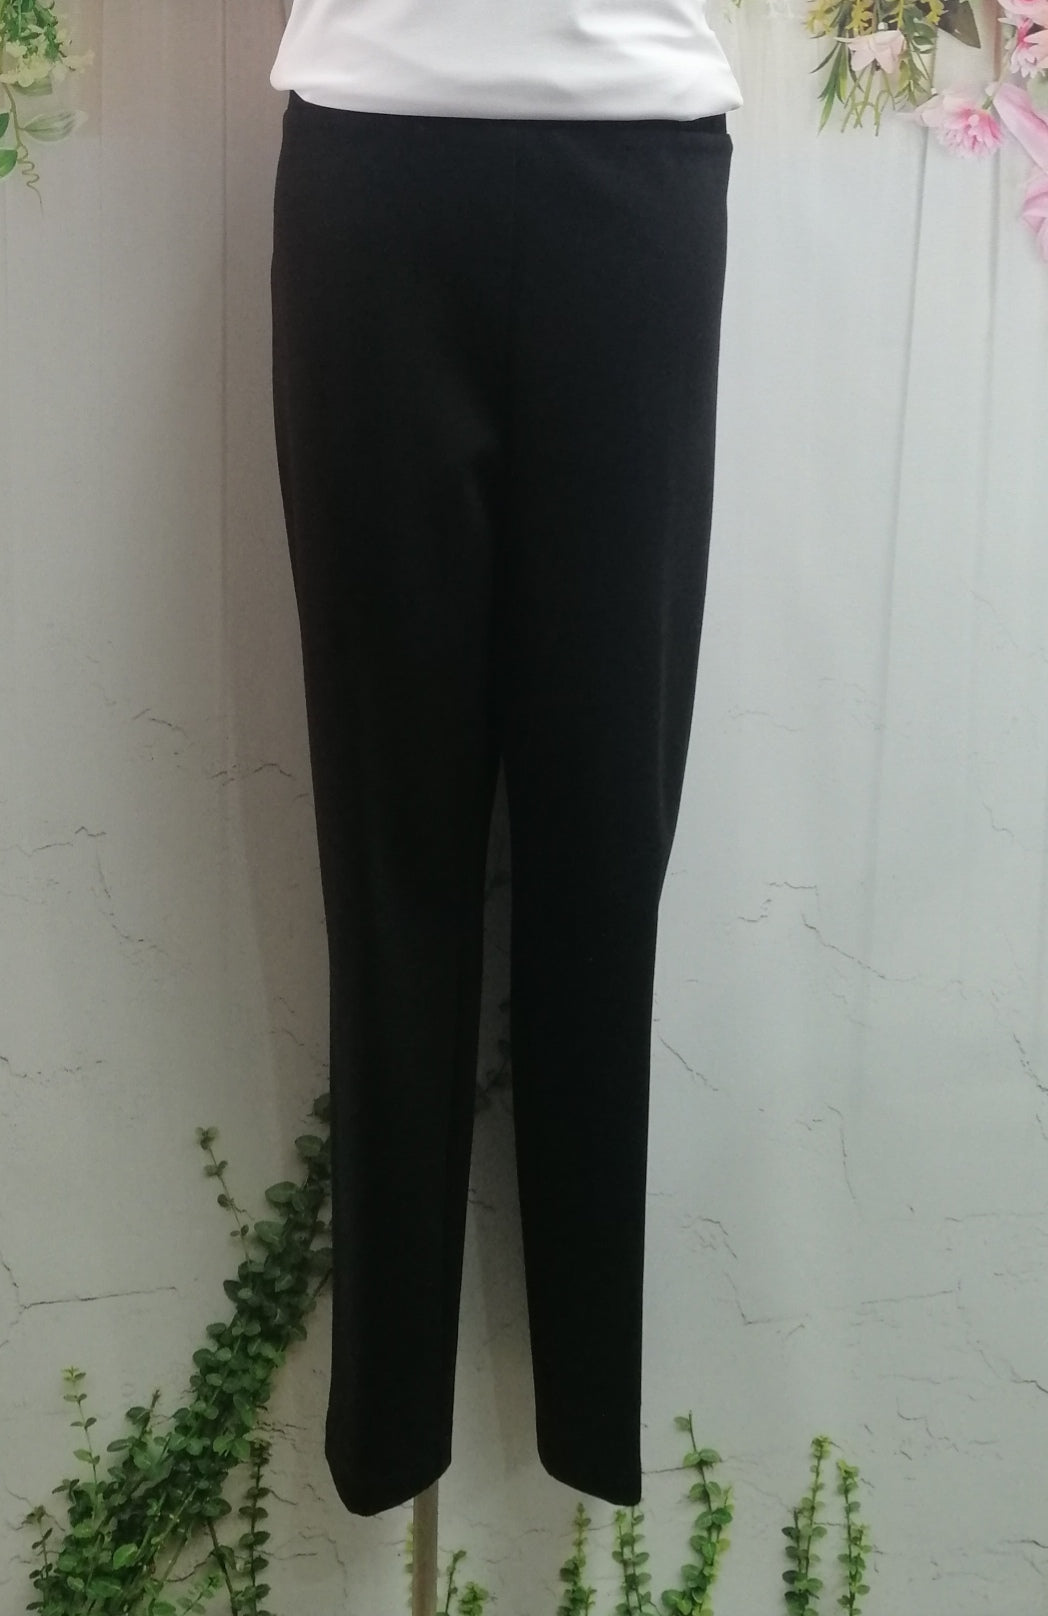 Swish Slim Ponte Pants - Fashion Focus